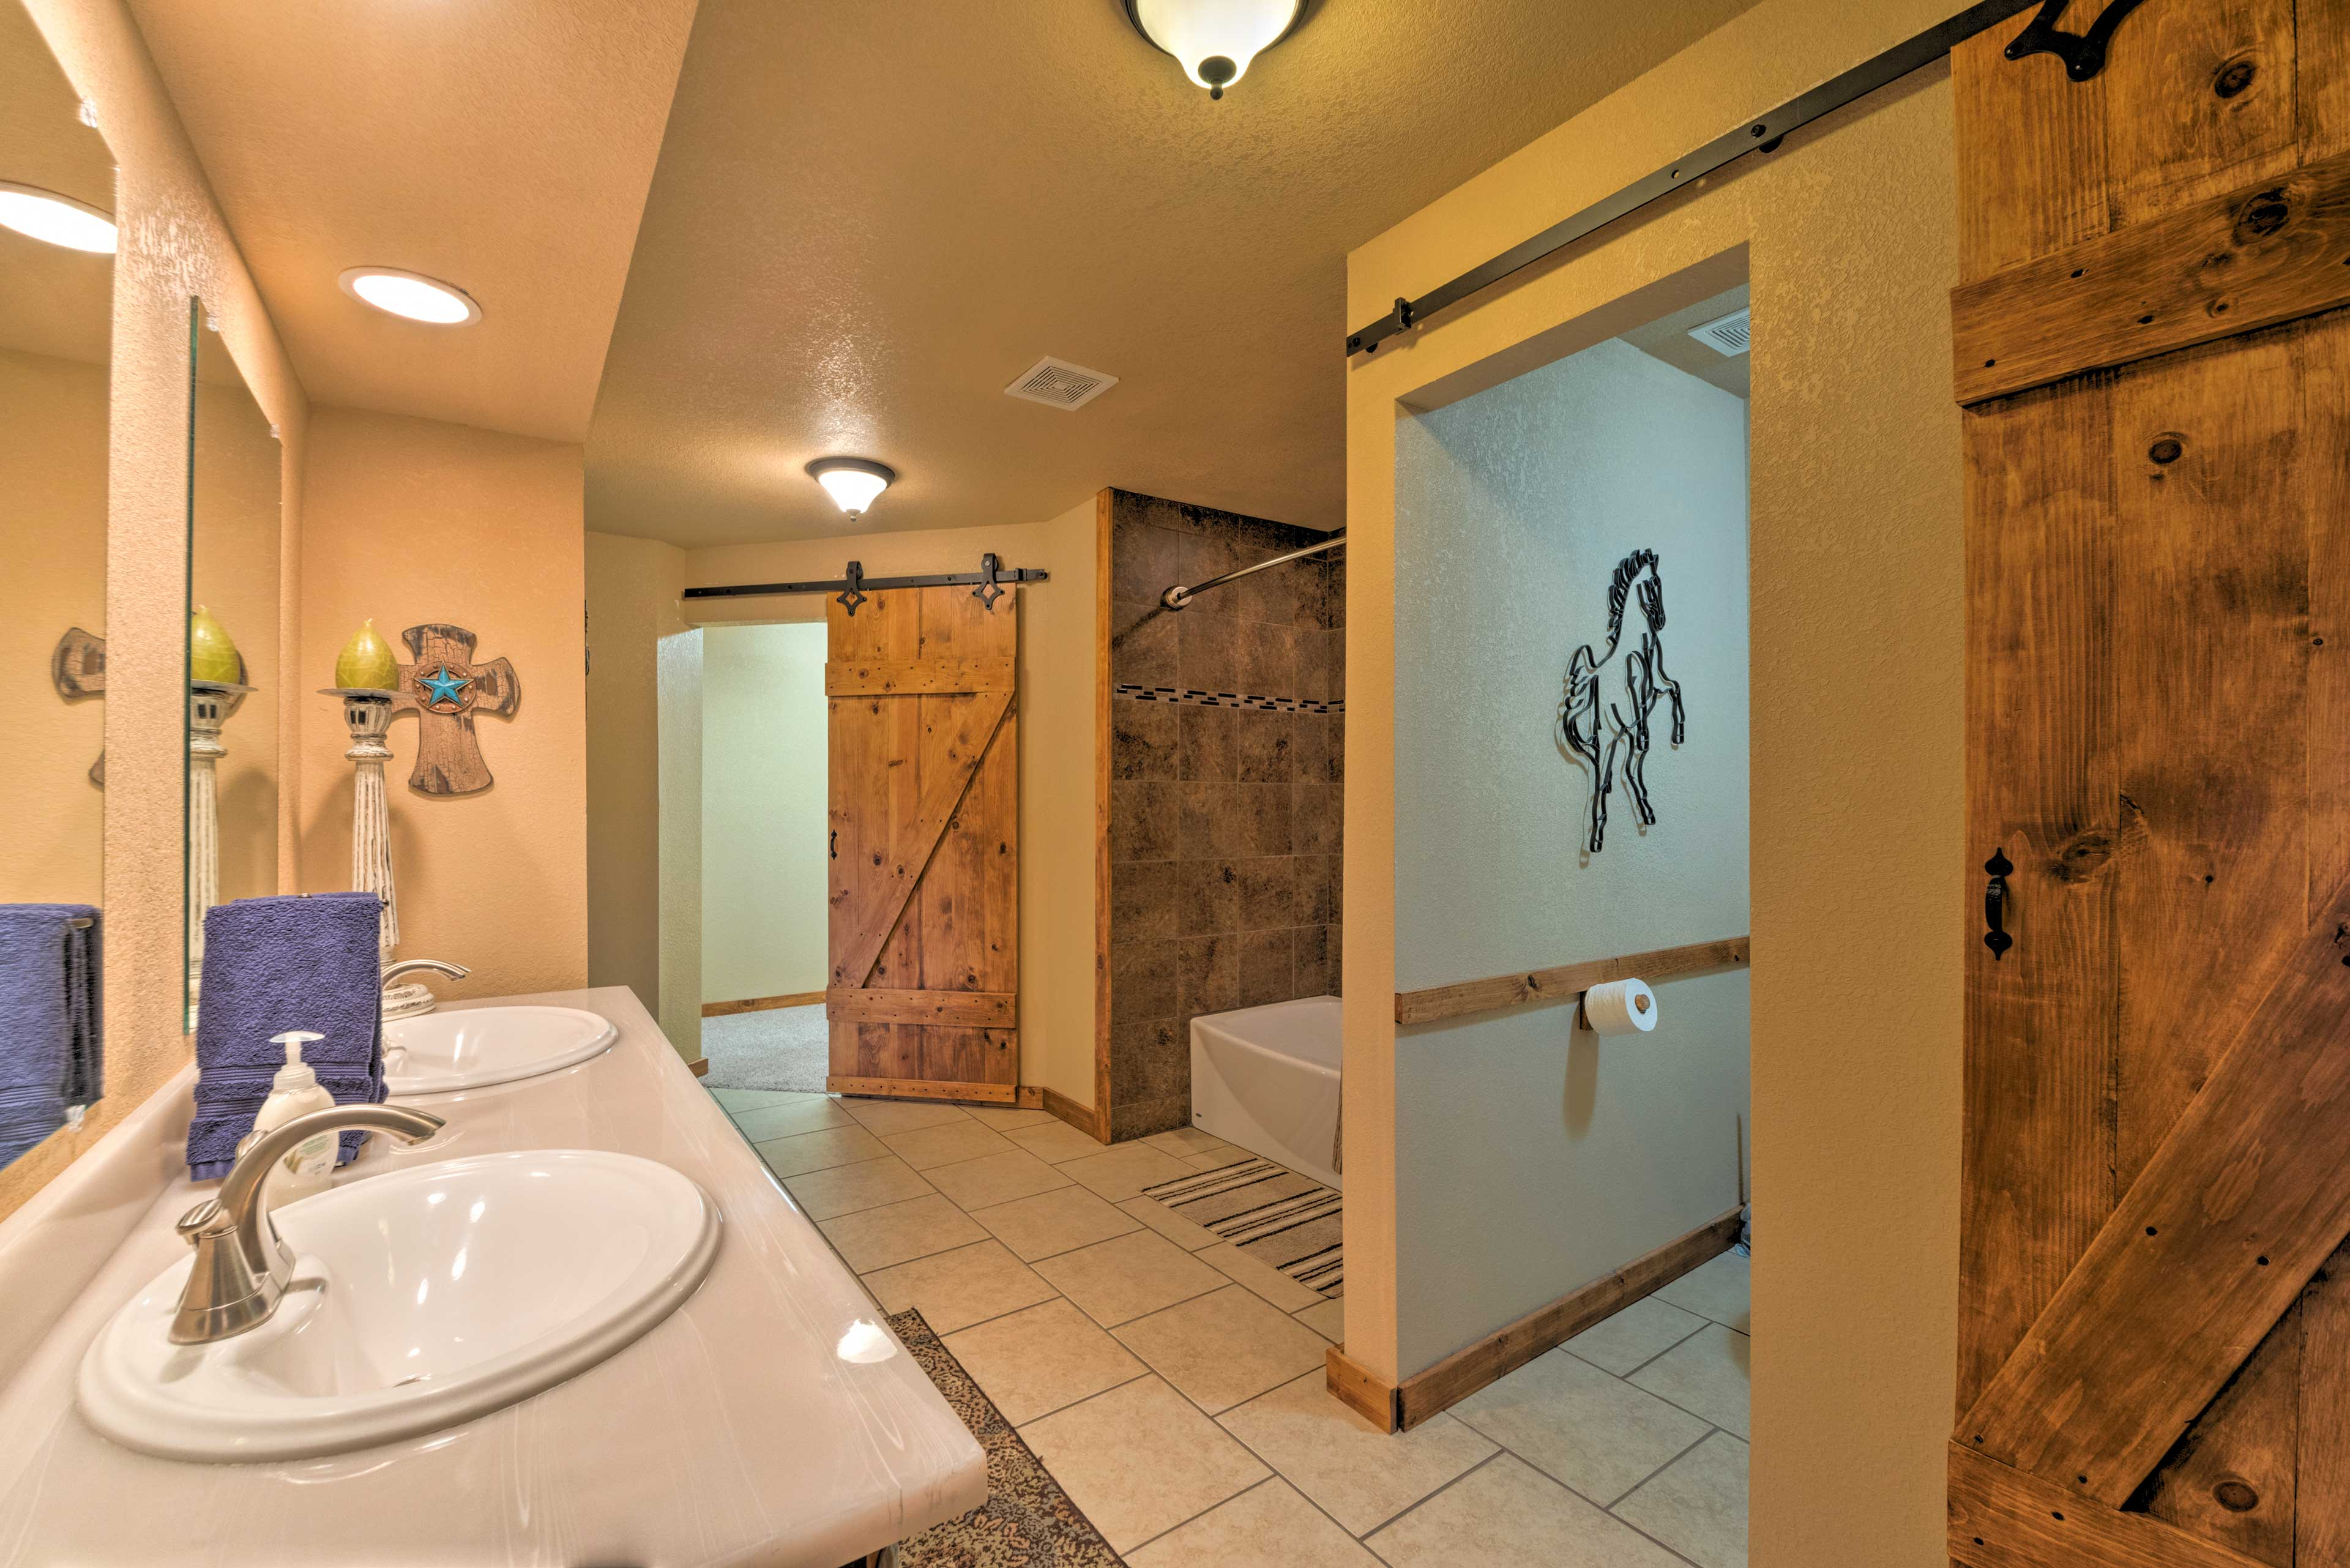 Feel refreshed in this rustic bathroom.